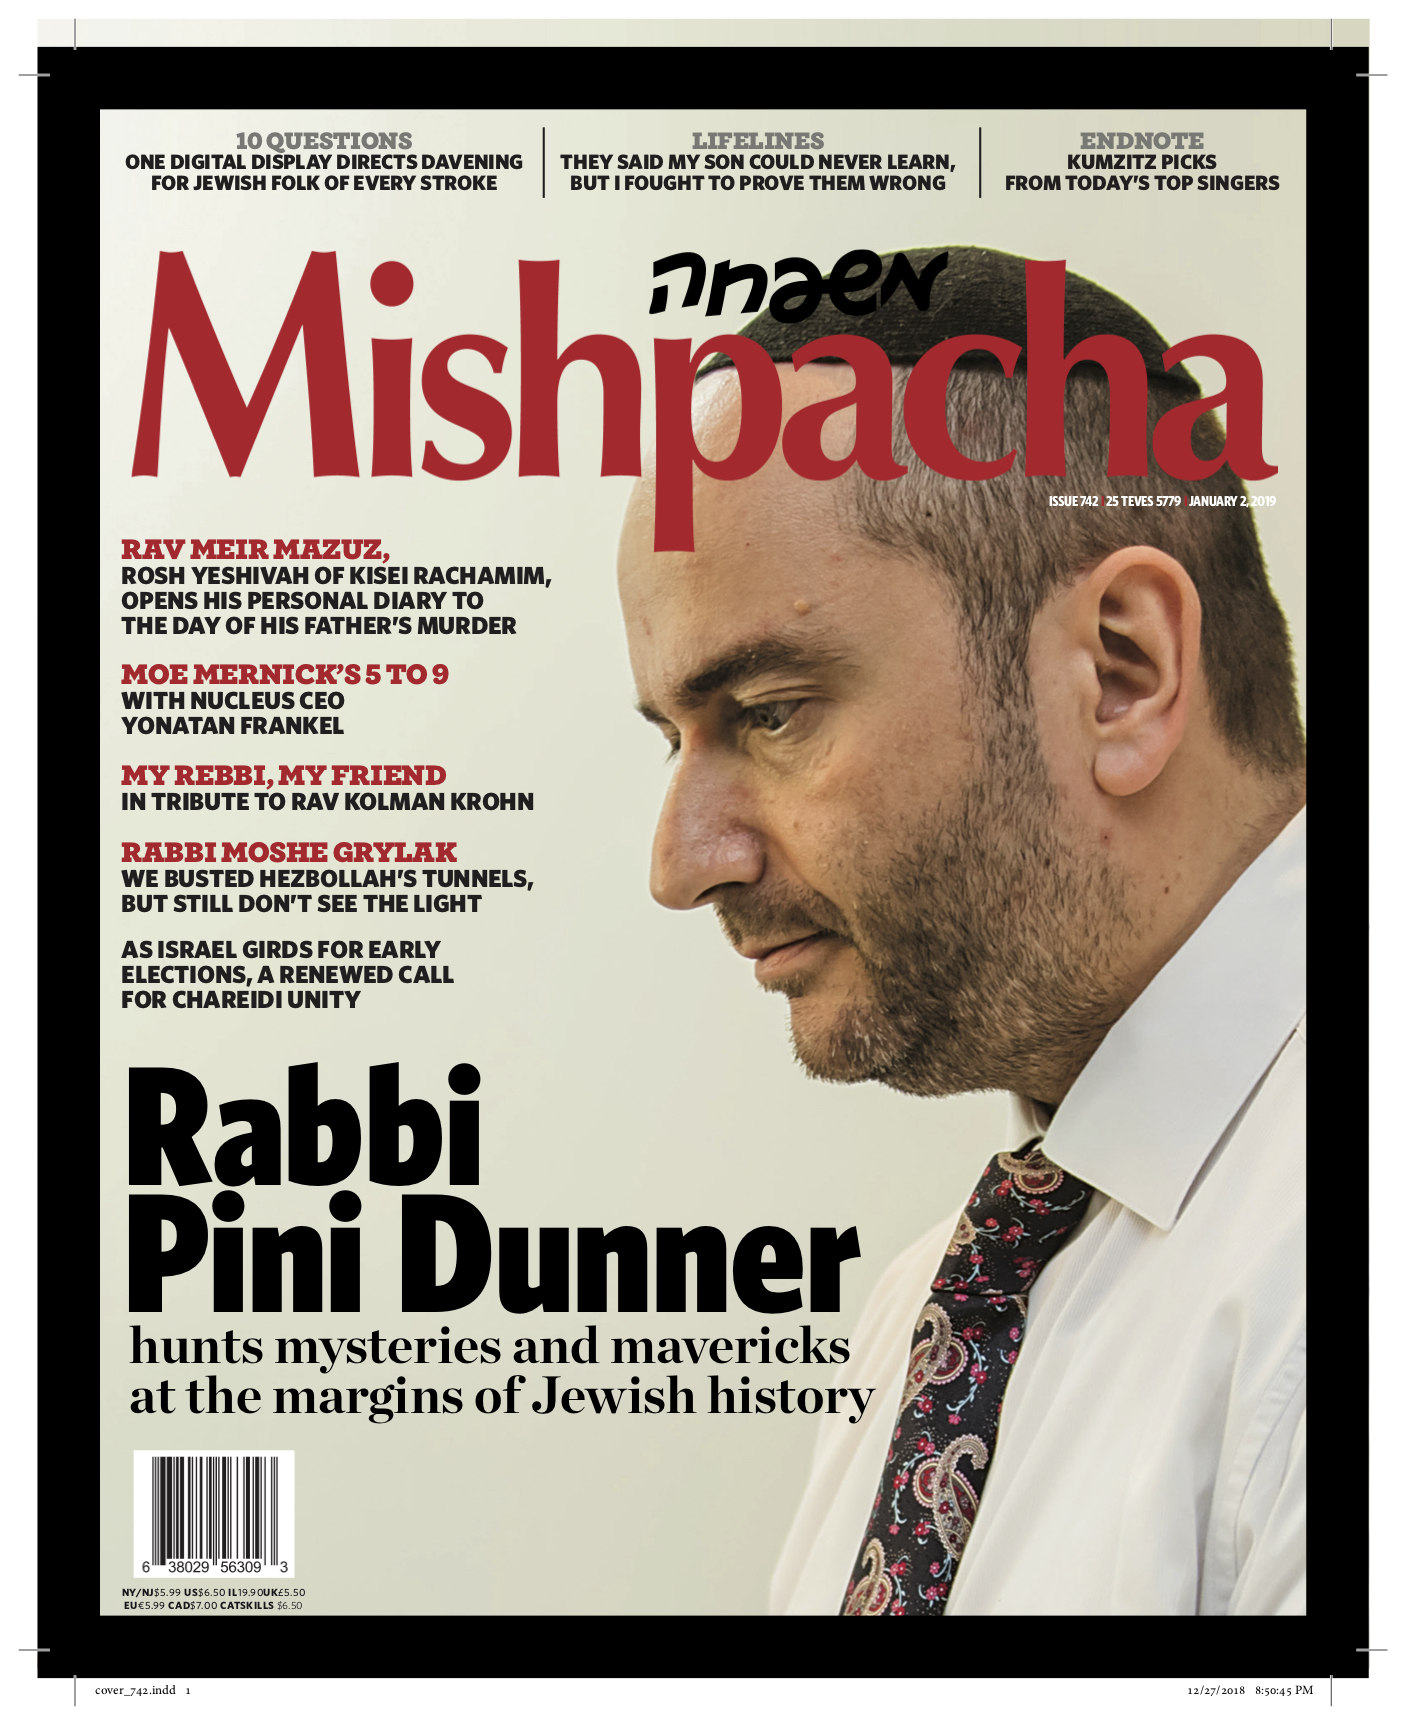 Rabbi Dunner features as the cover story in Mishpacha magazine, on January 2nd 2019